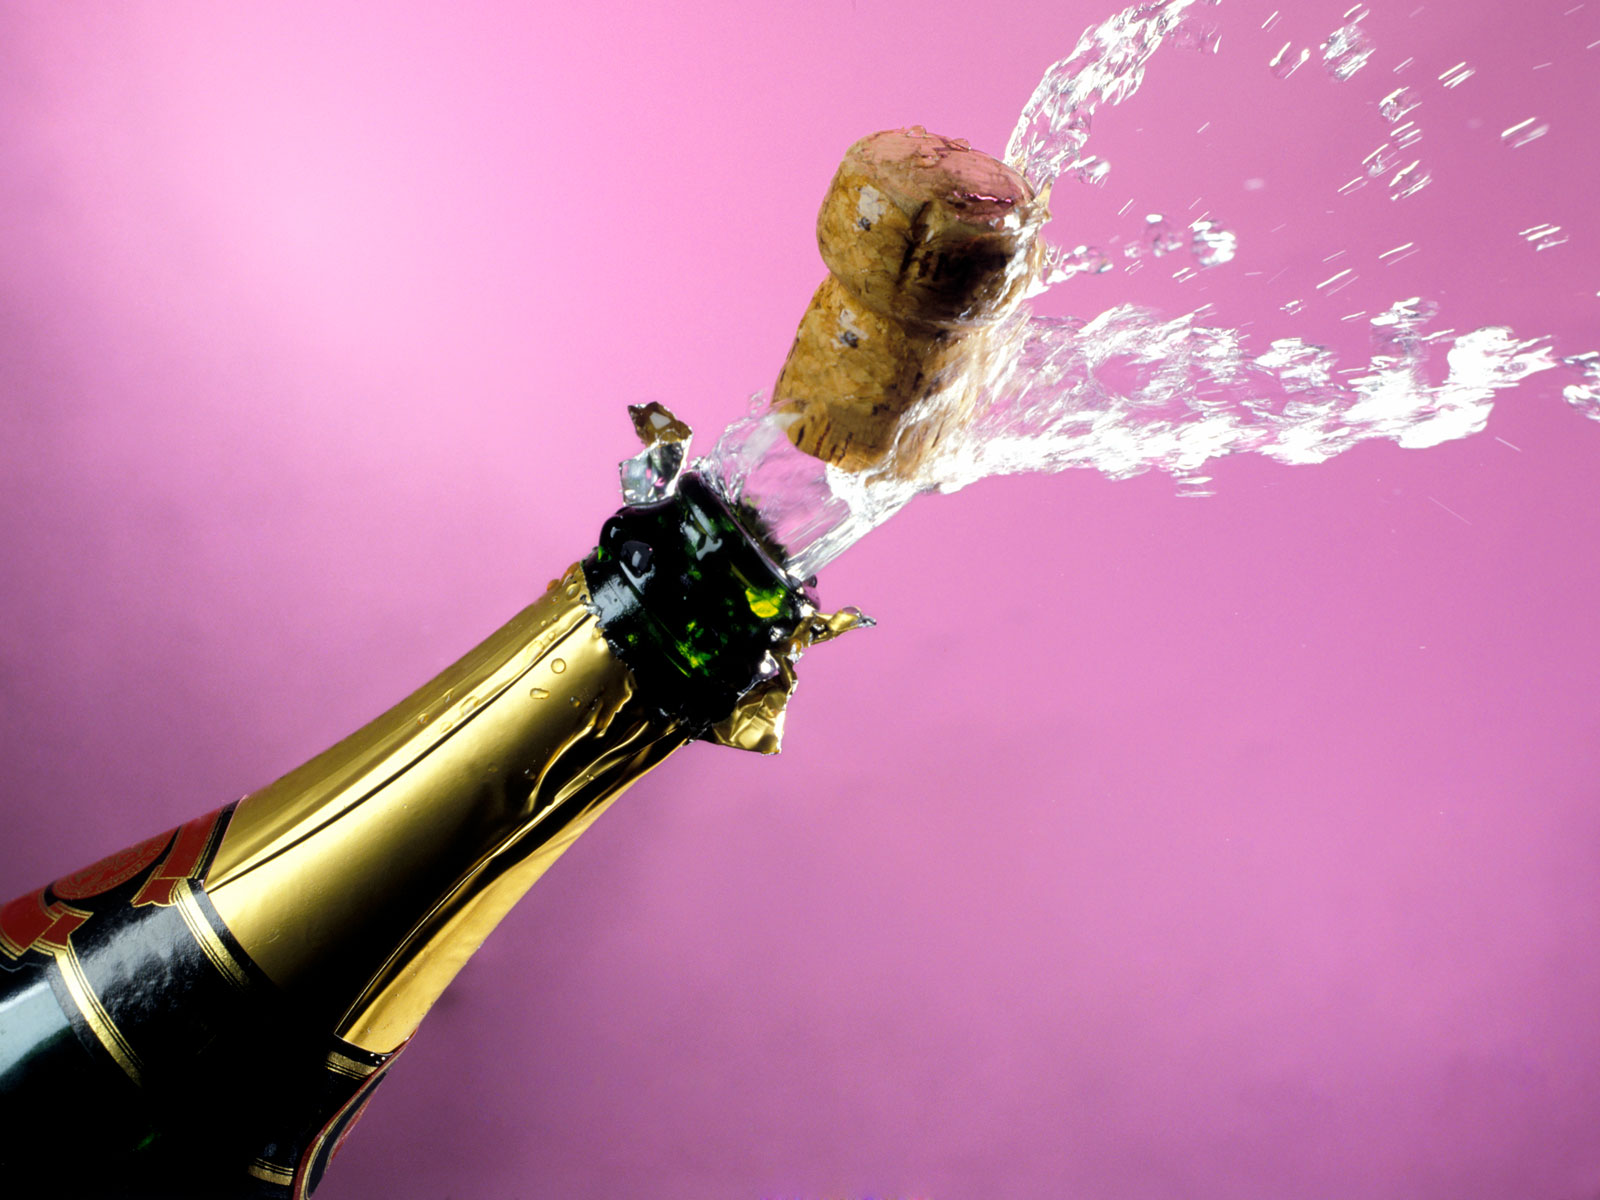 champagne-cork-science-FT-BLOG1119.jpg